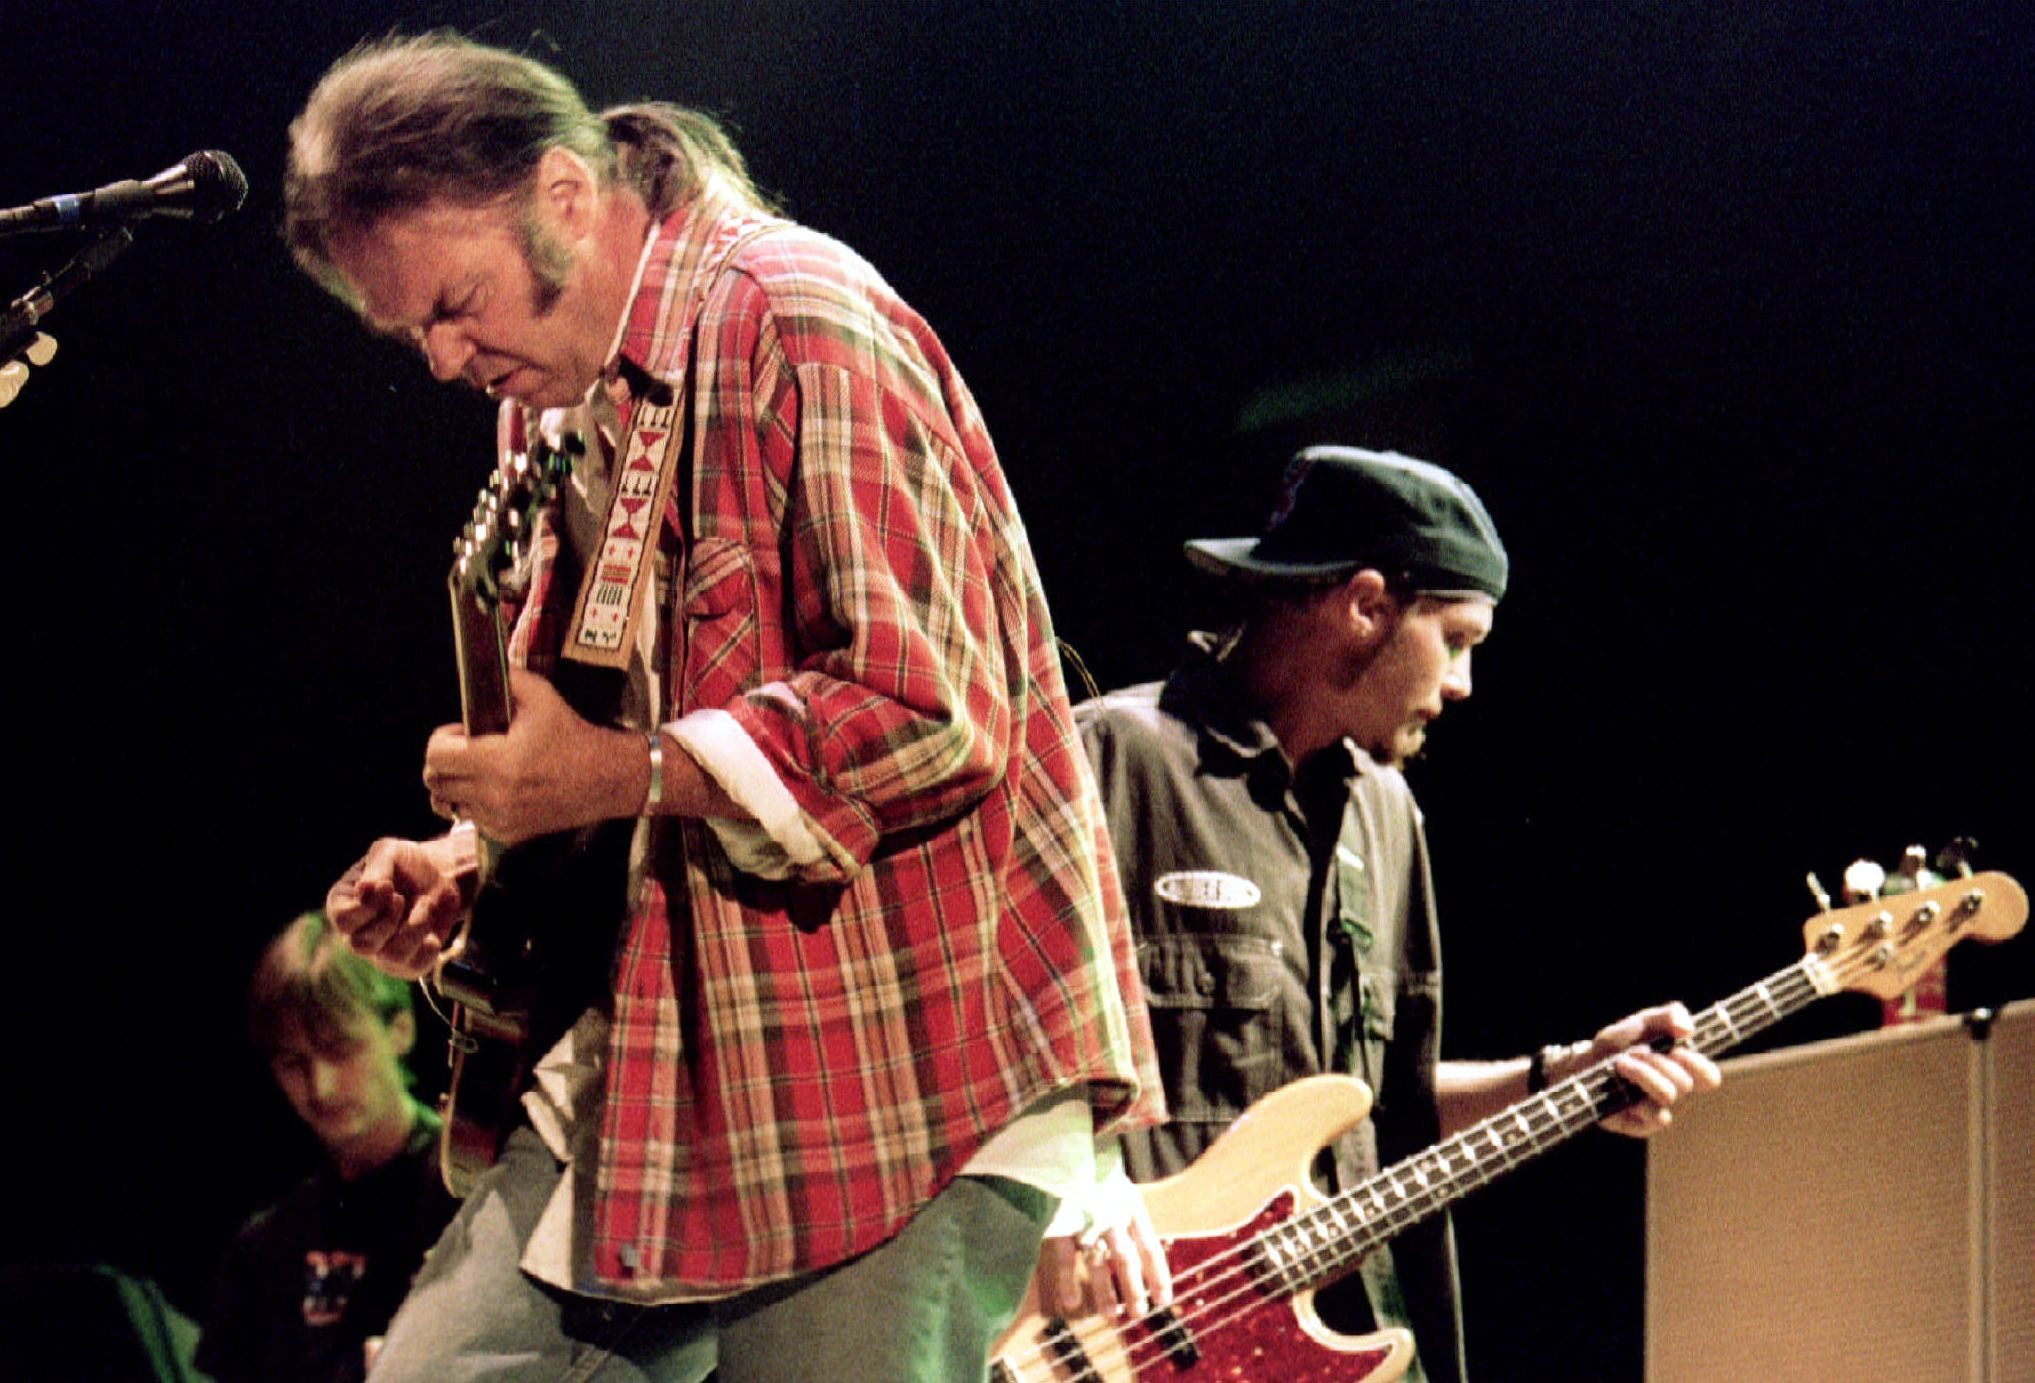 neil-young-documentary-movie-harvest-moon-pics-actress